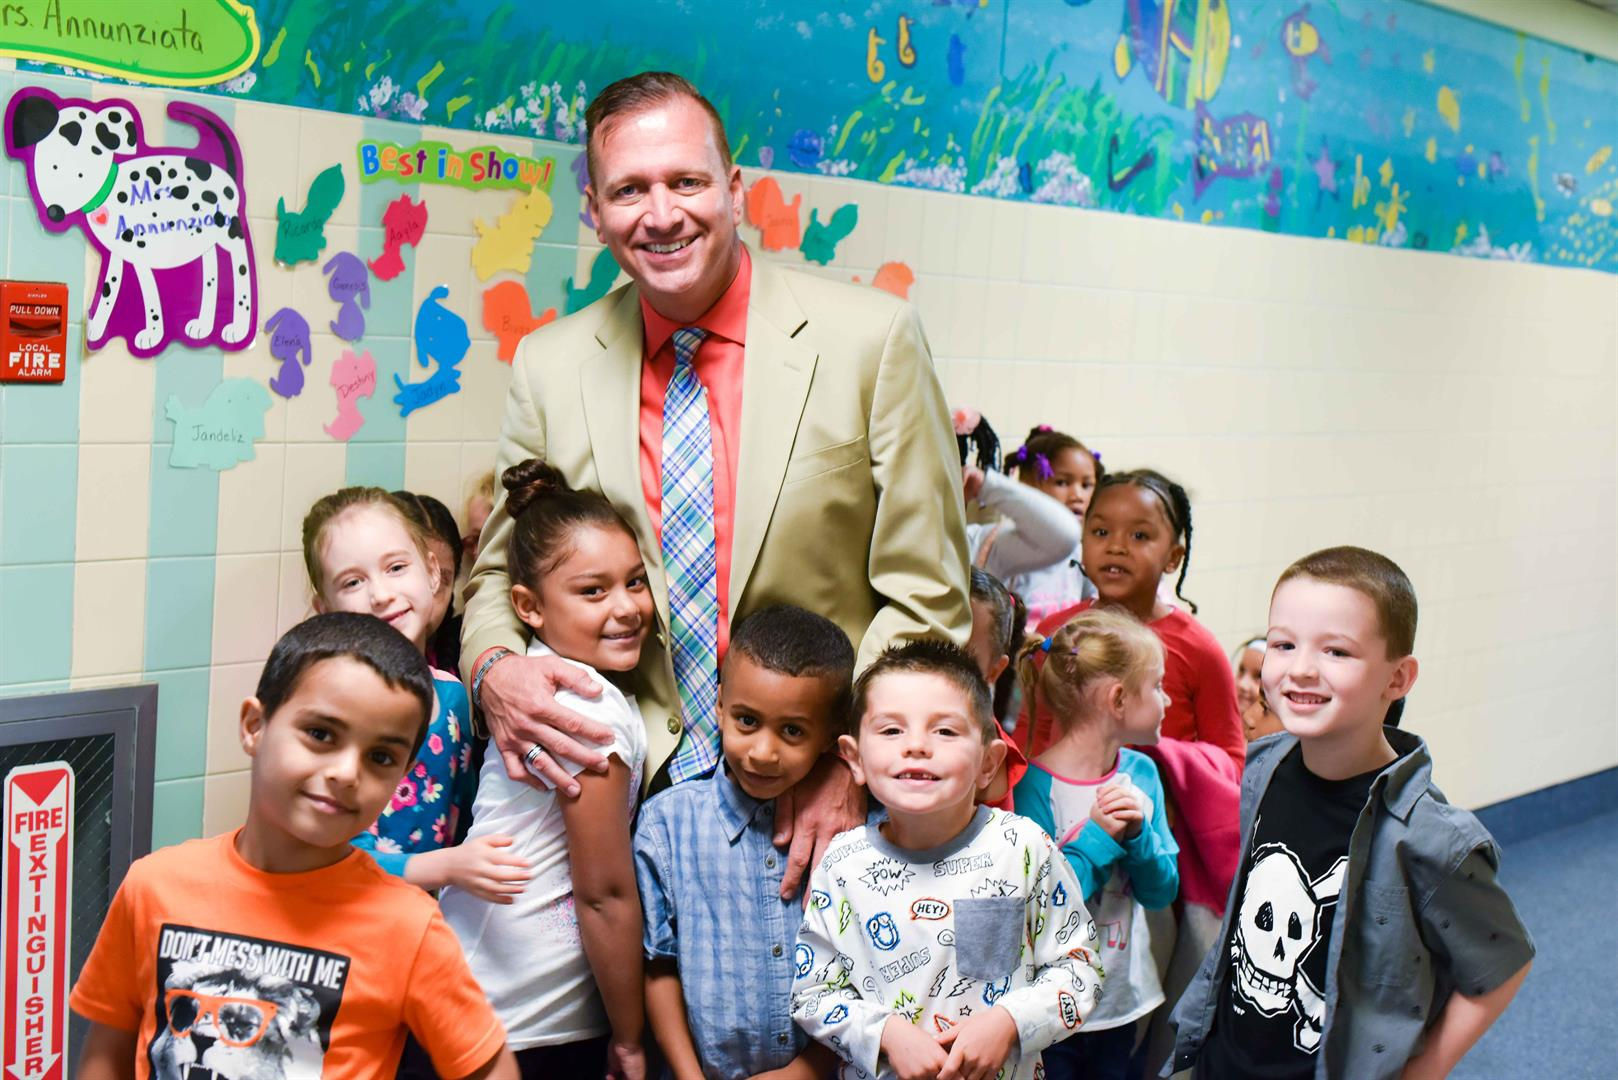 Principal surrounded by kids in hallway